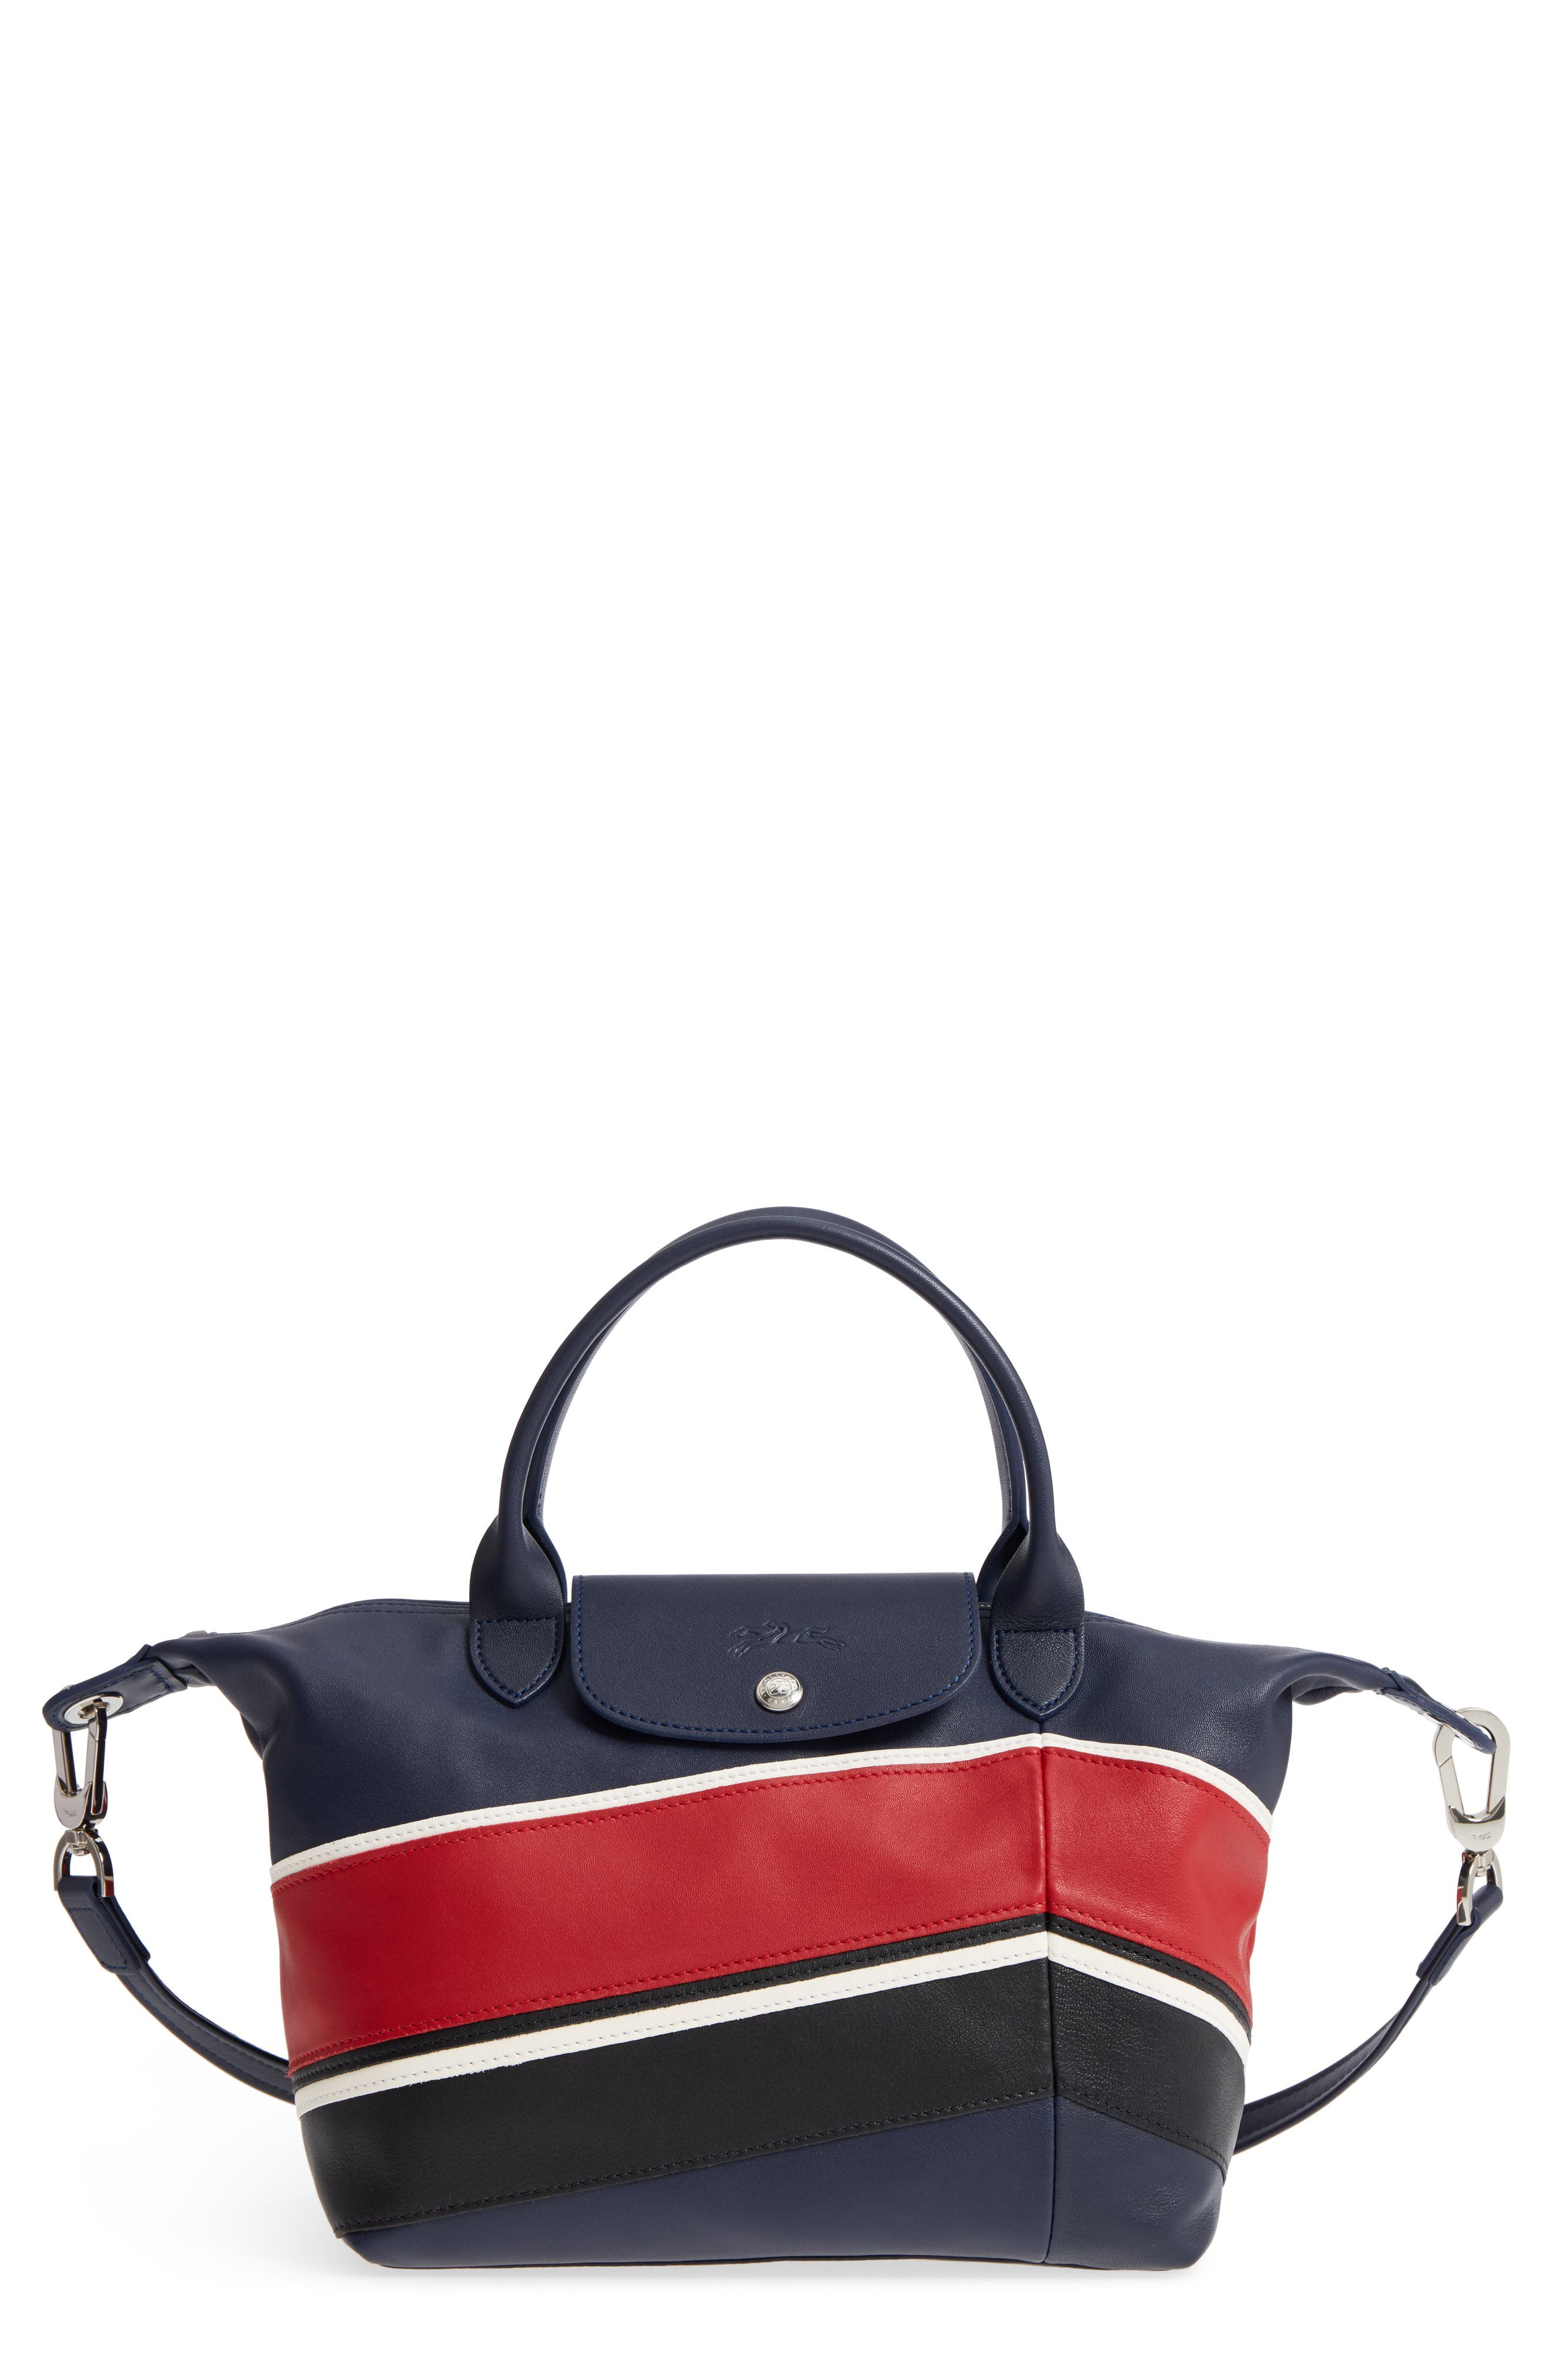 Main Image - Longchamp Small Le Pliage Cuir - Chevron Top Handle Leather Tote